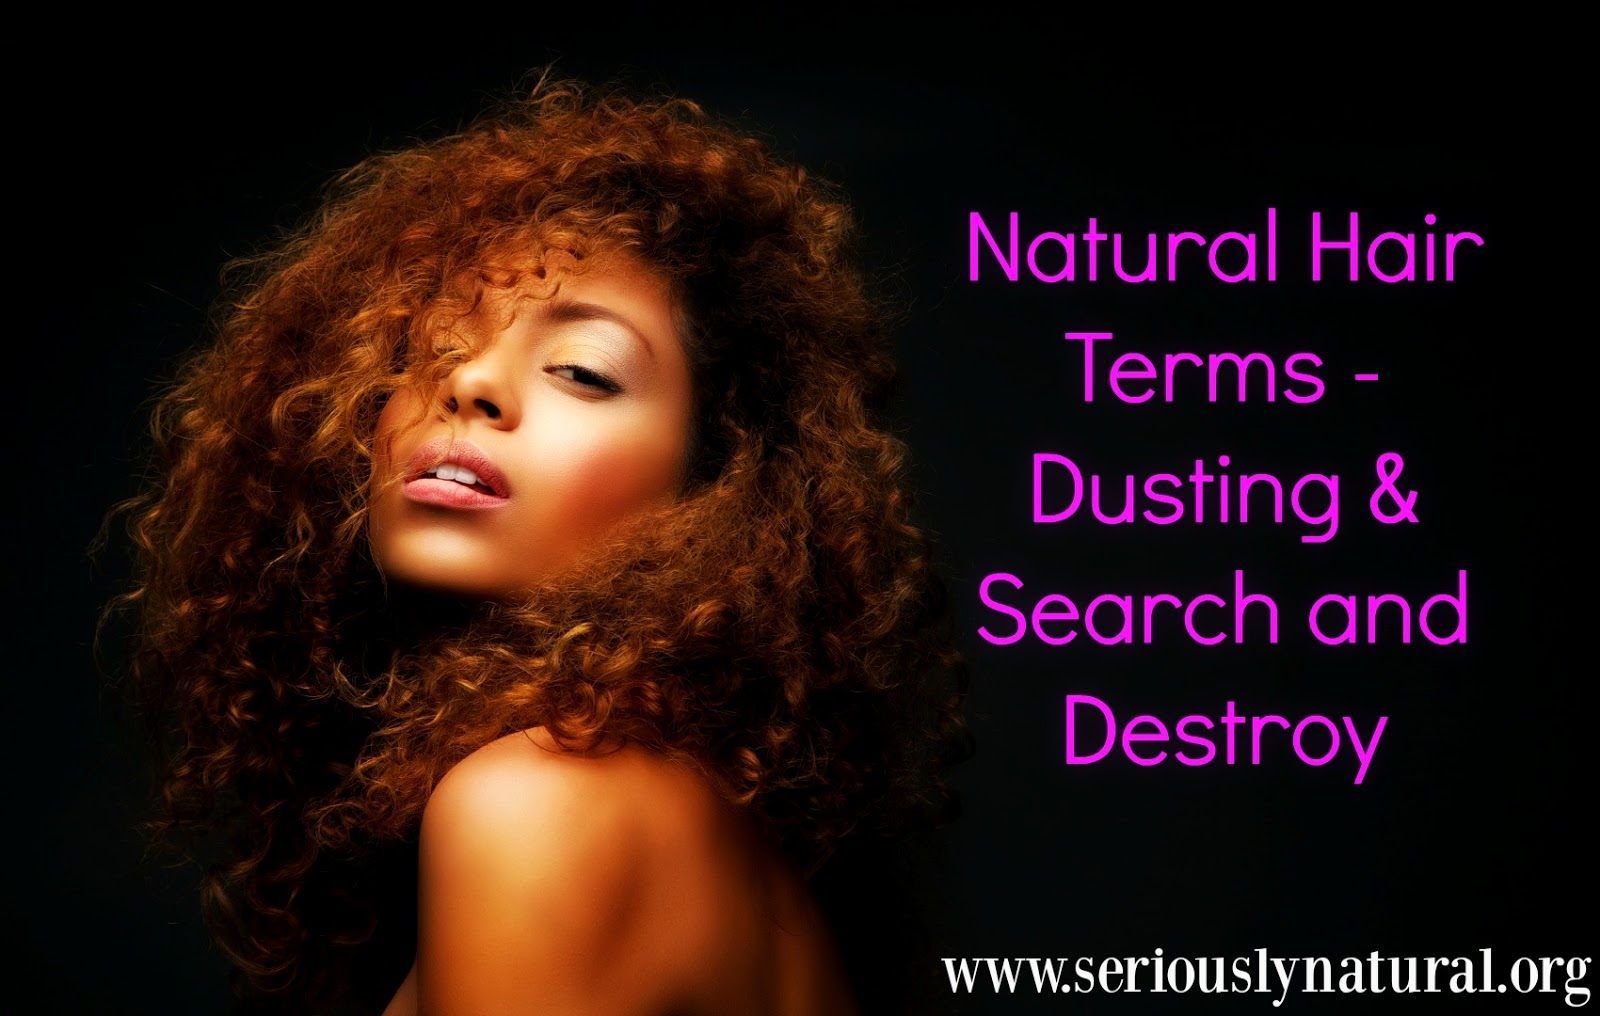 Natural Hair Terms - Dusting & Search and Destroy